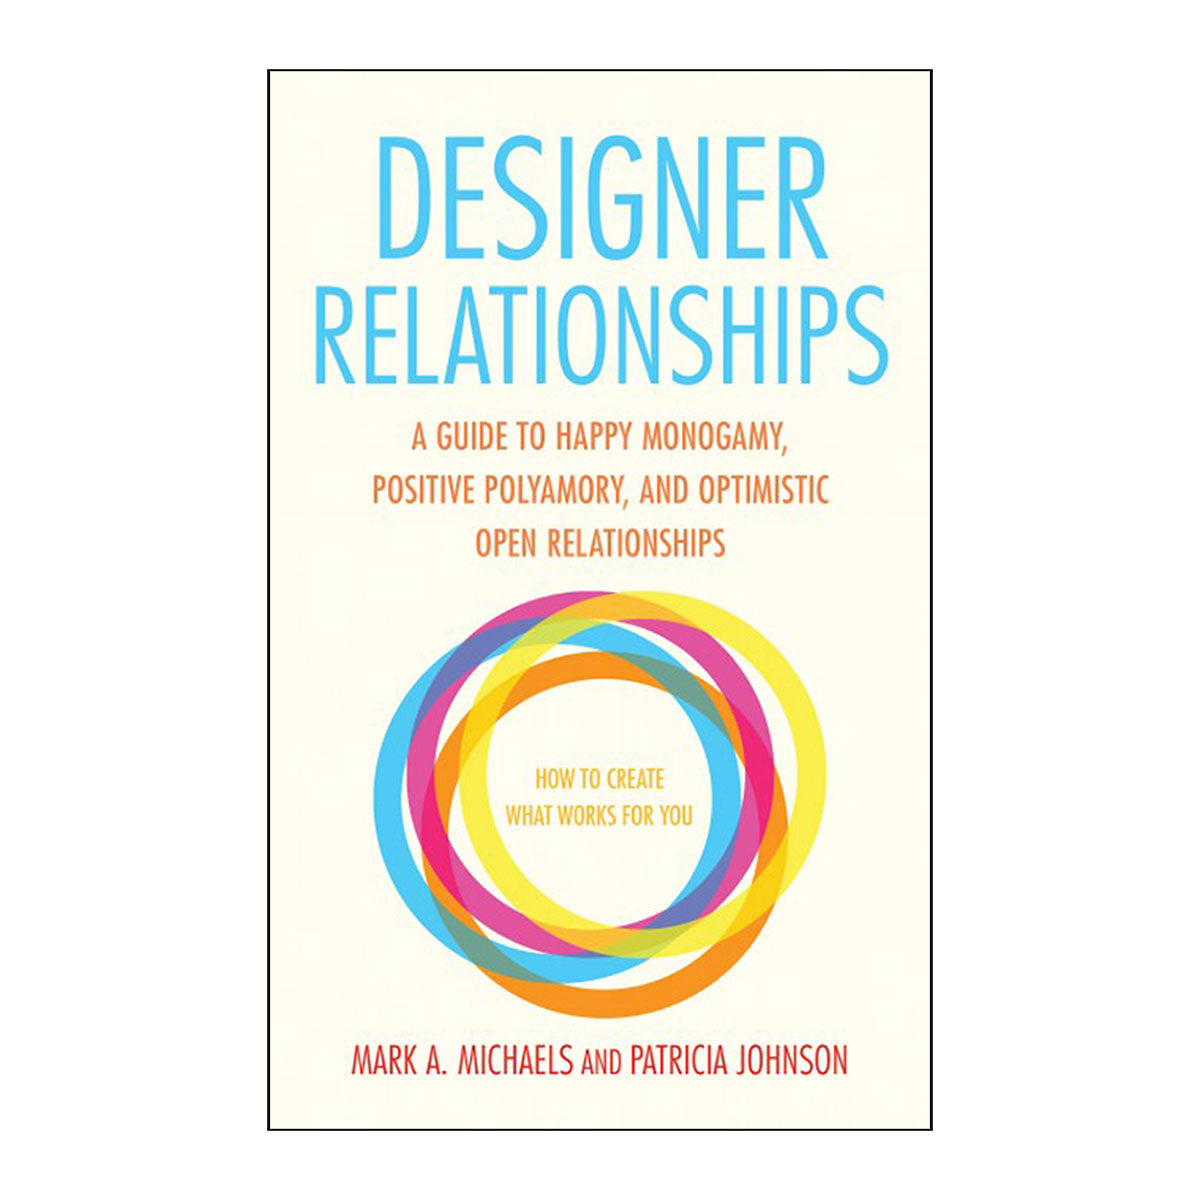 Designer Relationships - A Guide to Happy Monogamy, Positive Polyamory, and Optimistic Open Relationships - Cleis Press